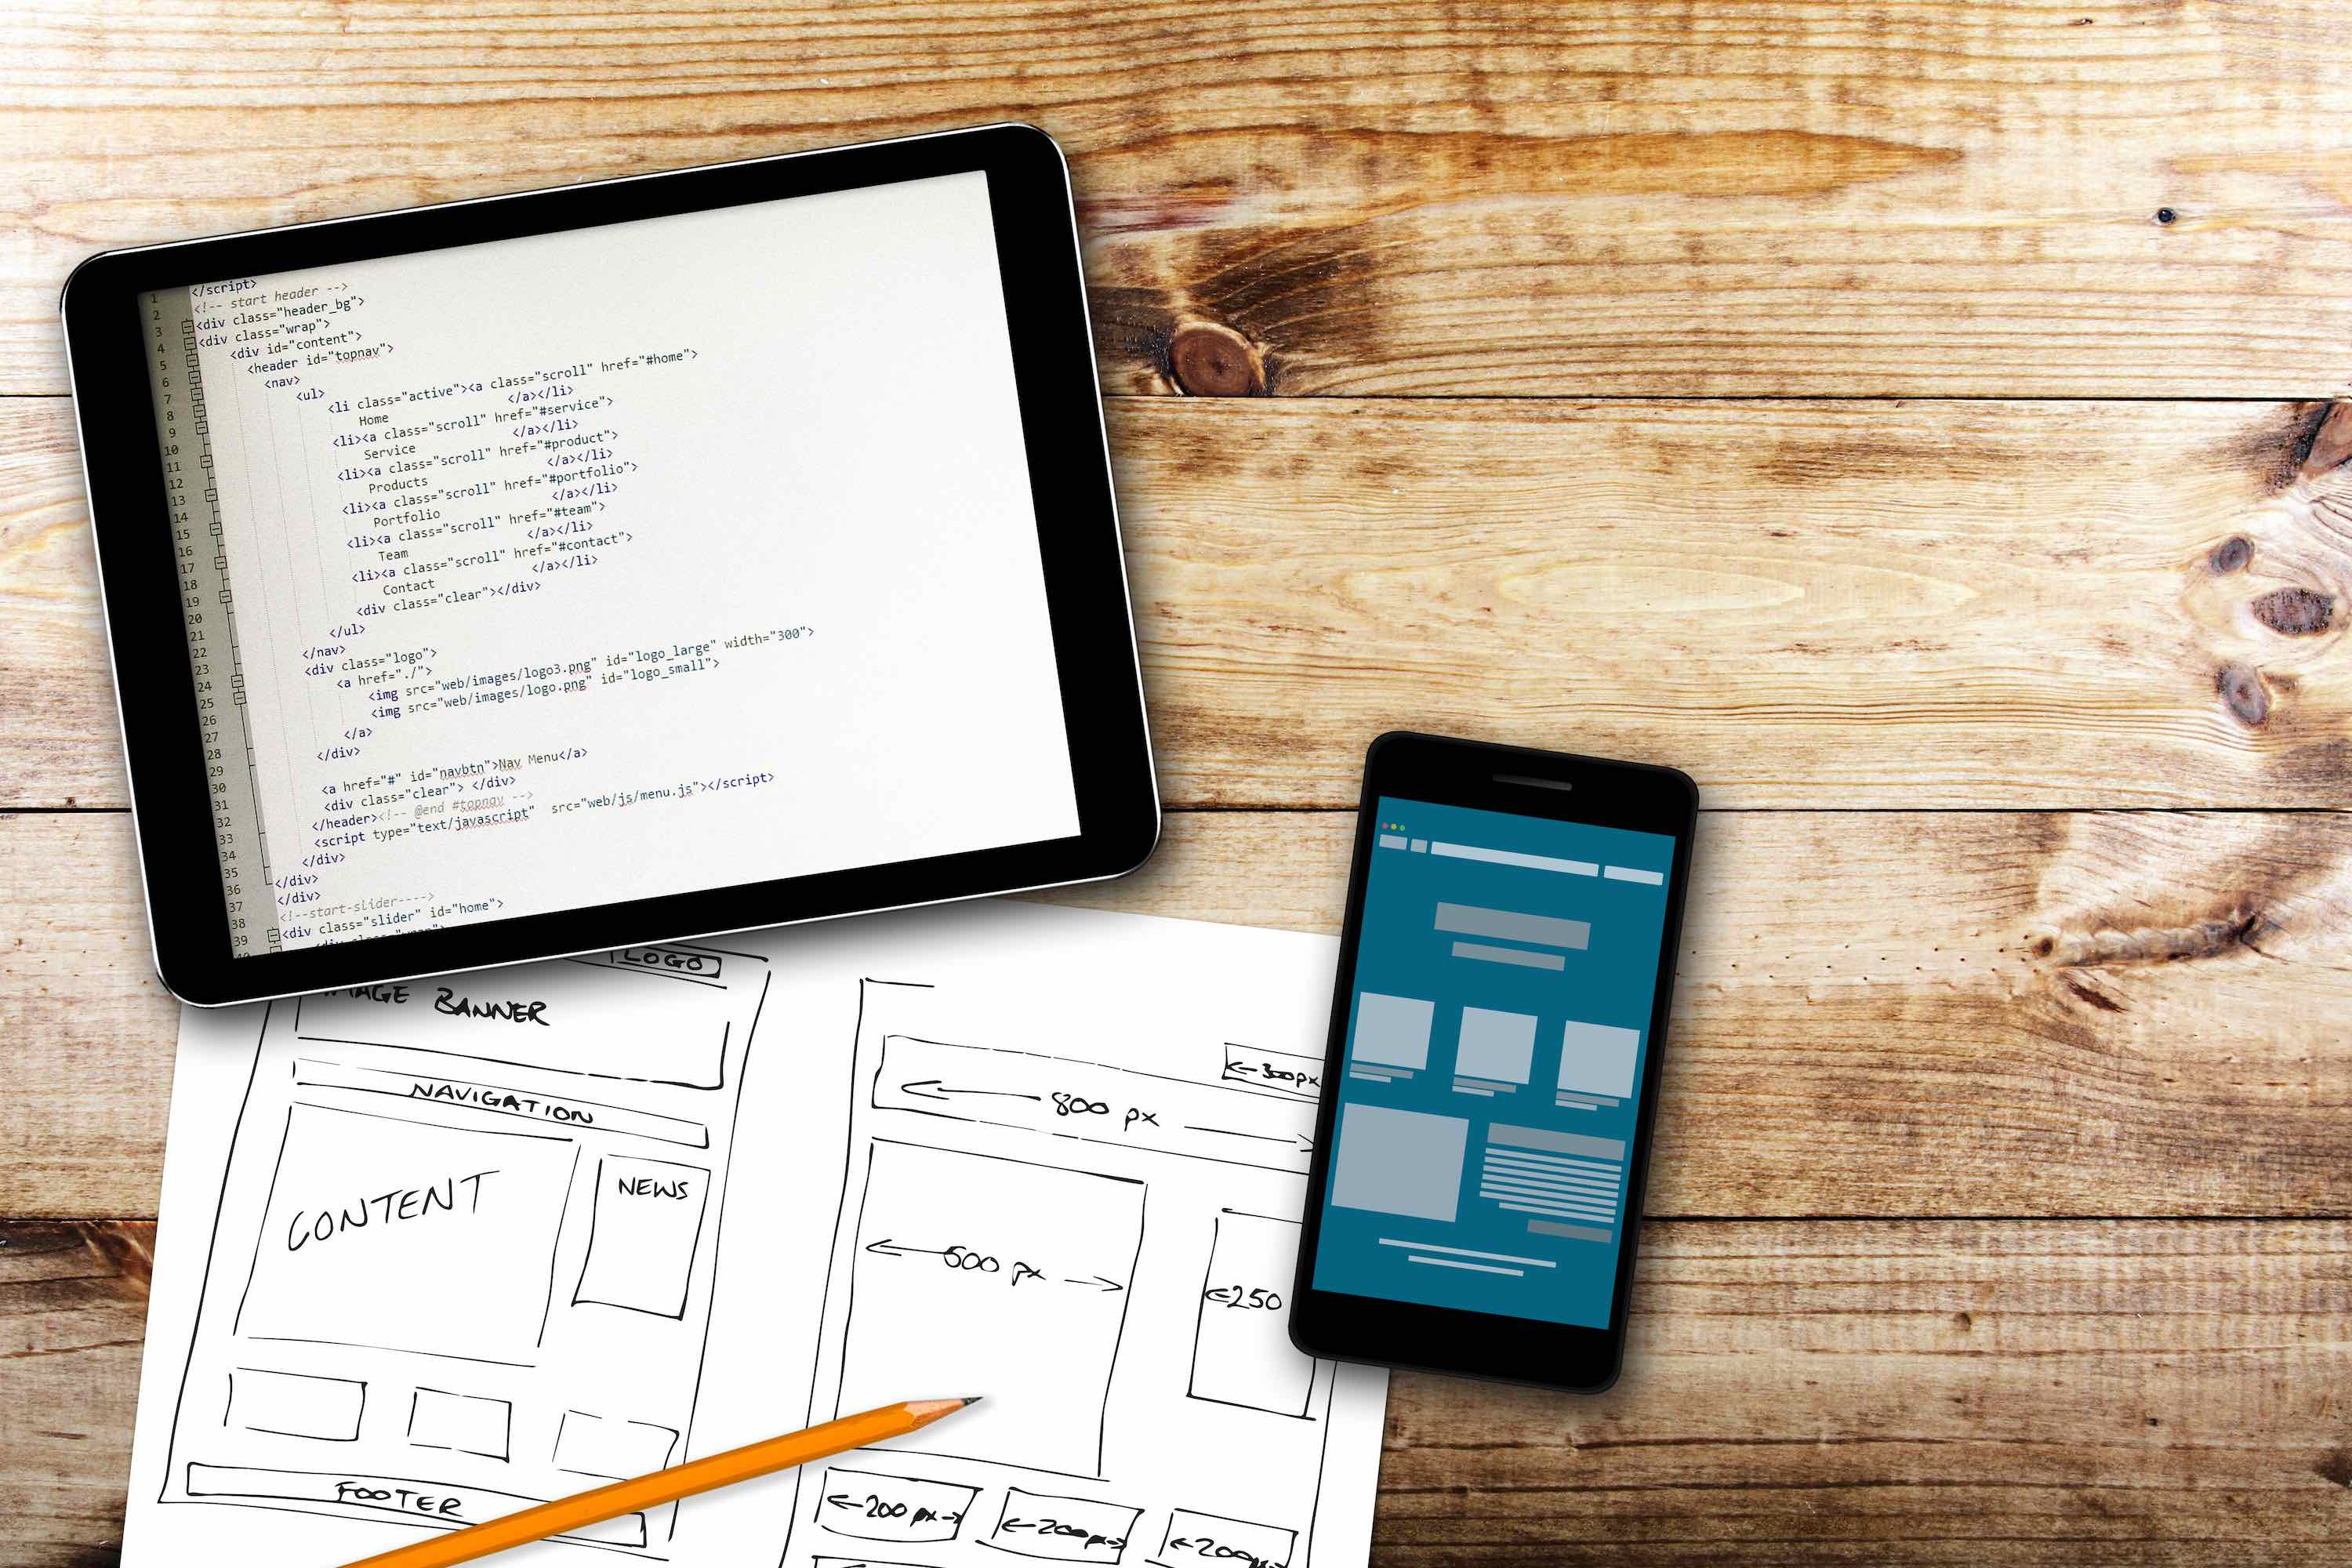 Software wireframe sketch and programming code on digital tablet